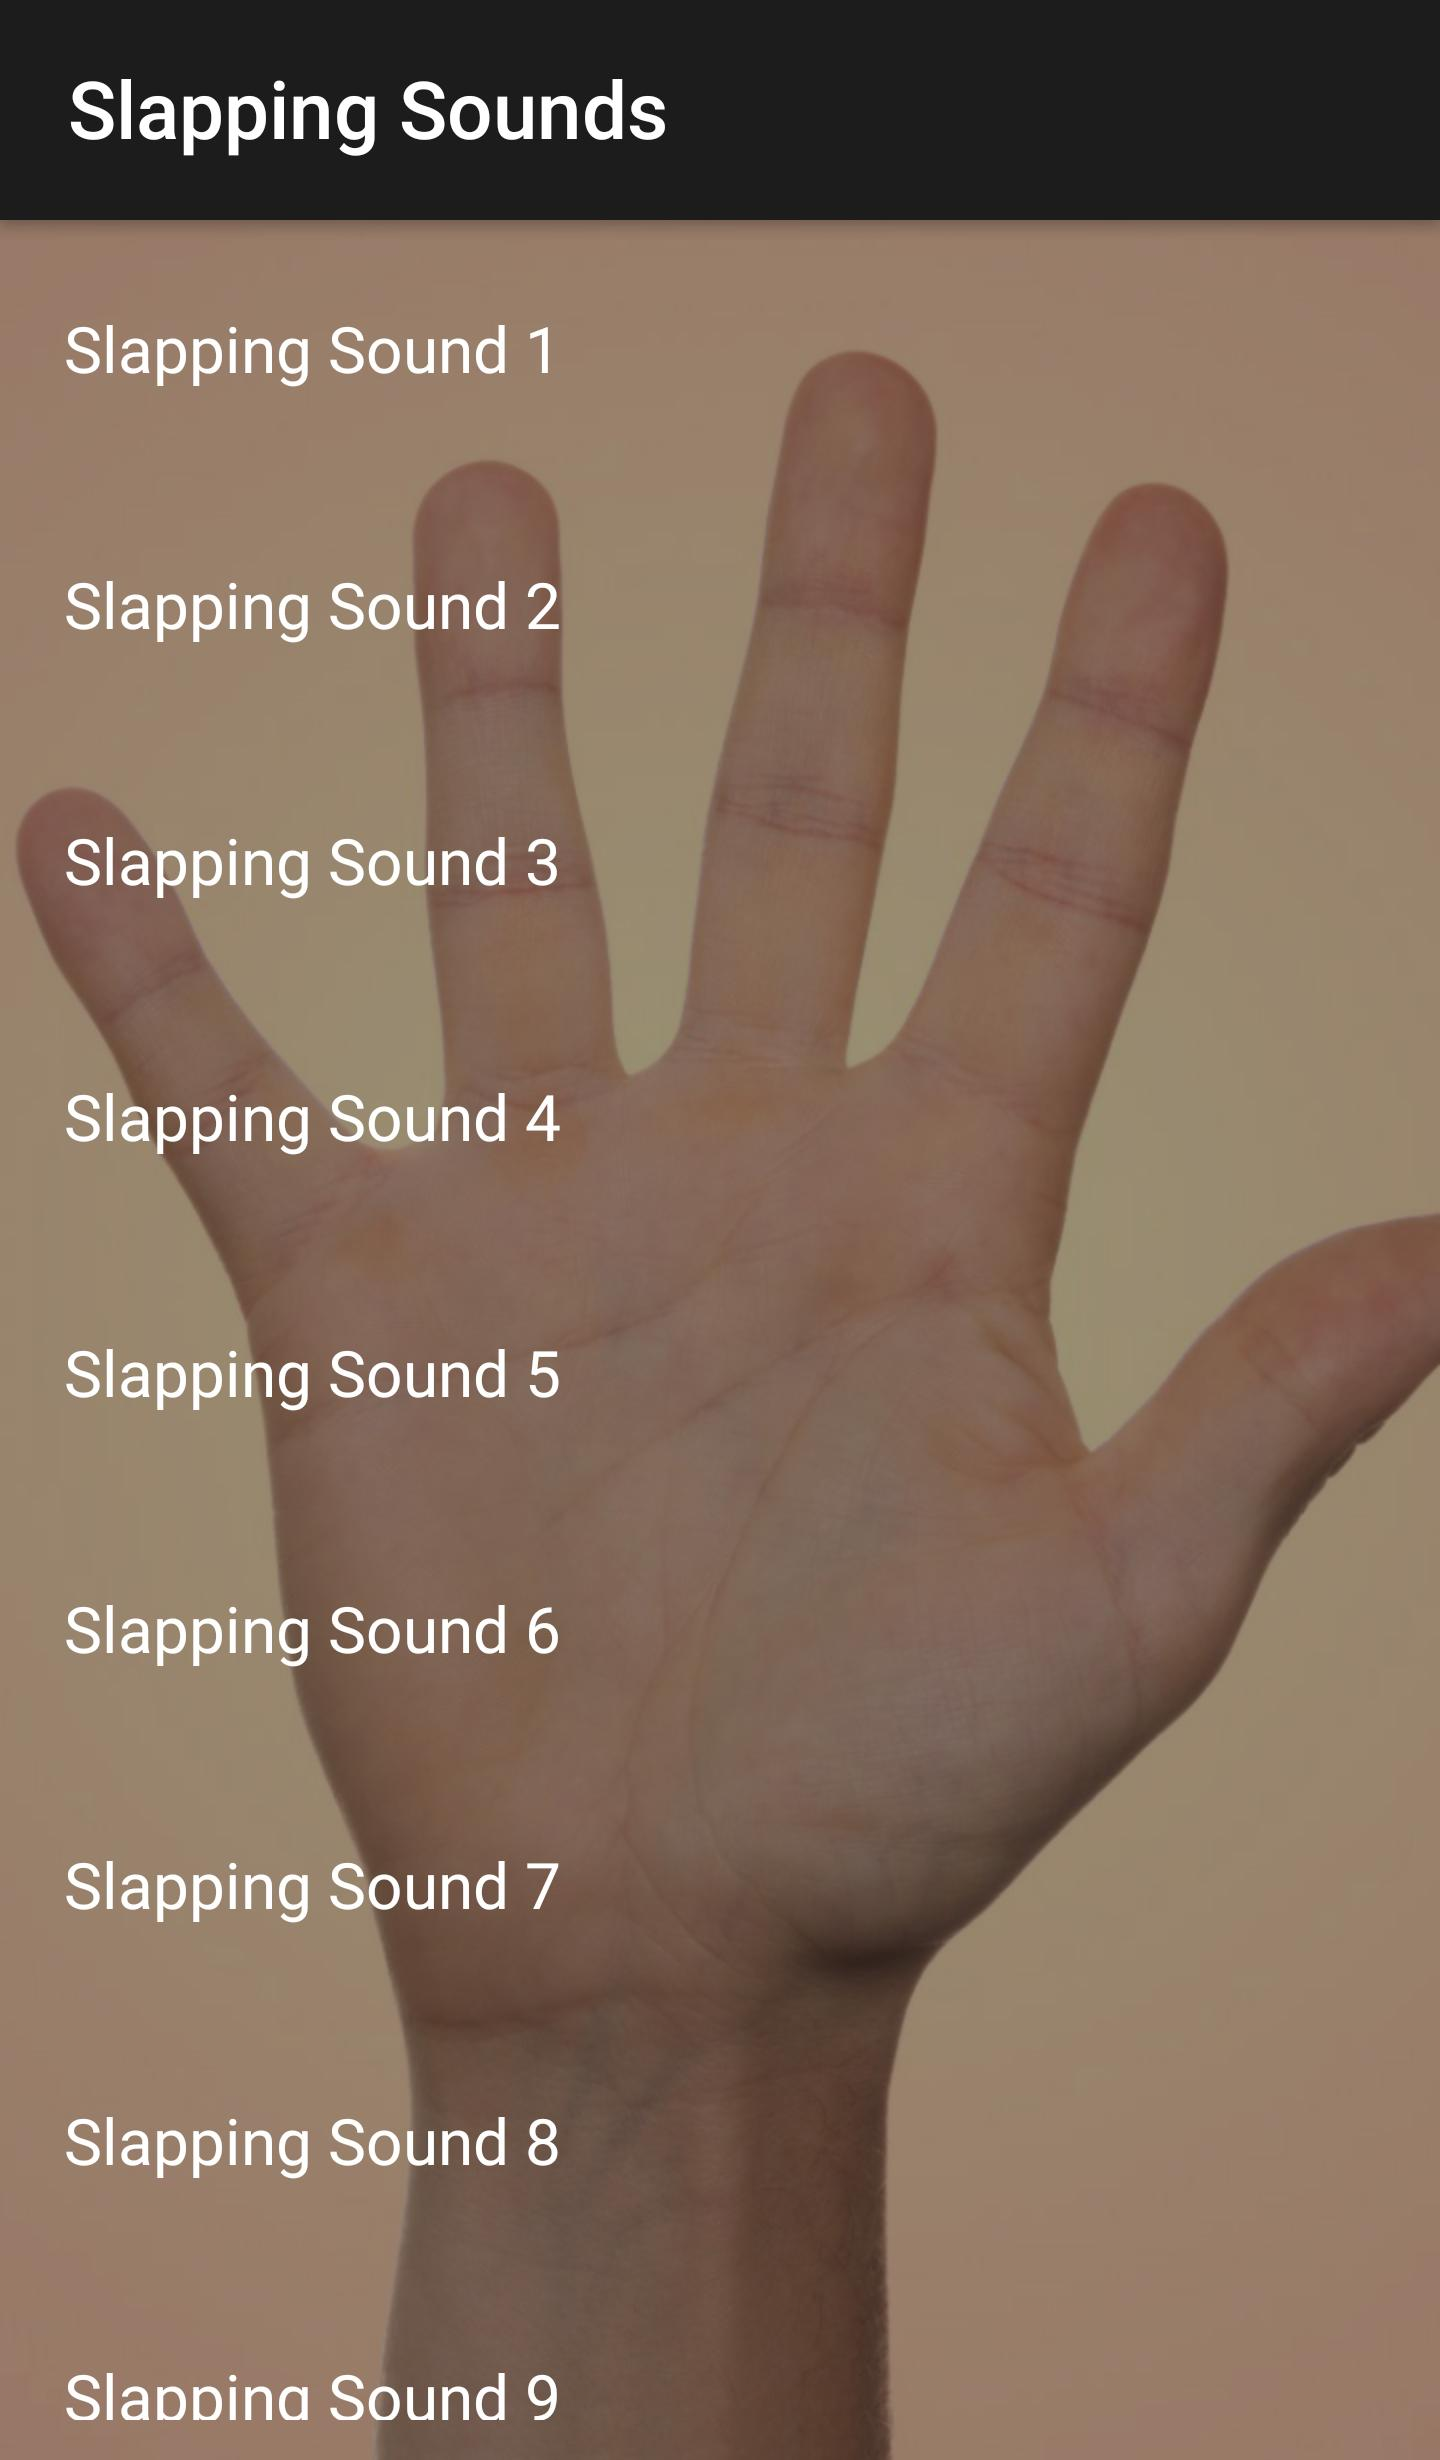 Slapping Sounds for Android - APK Download